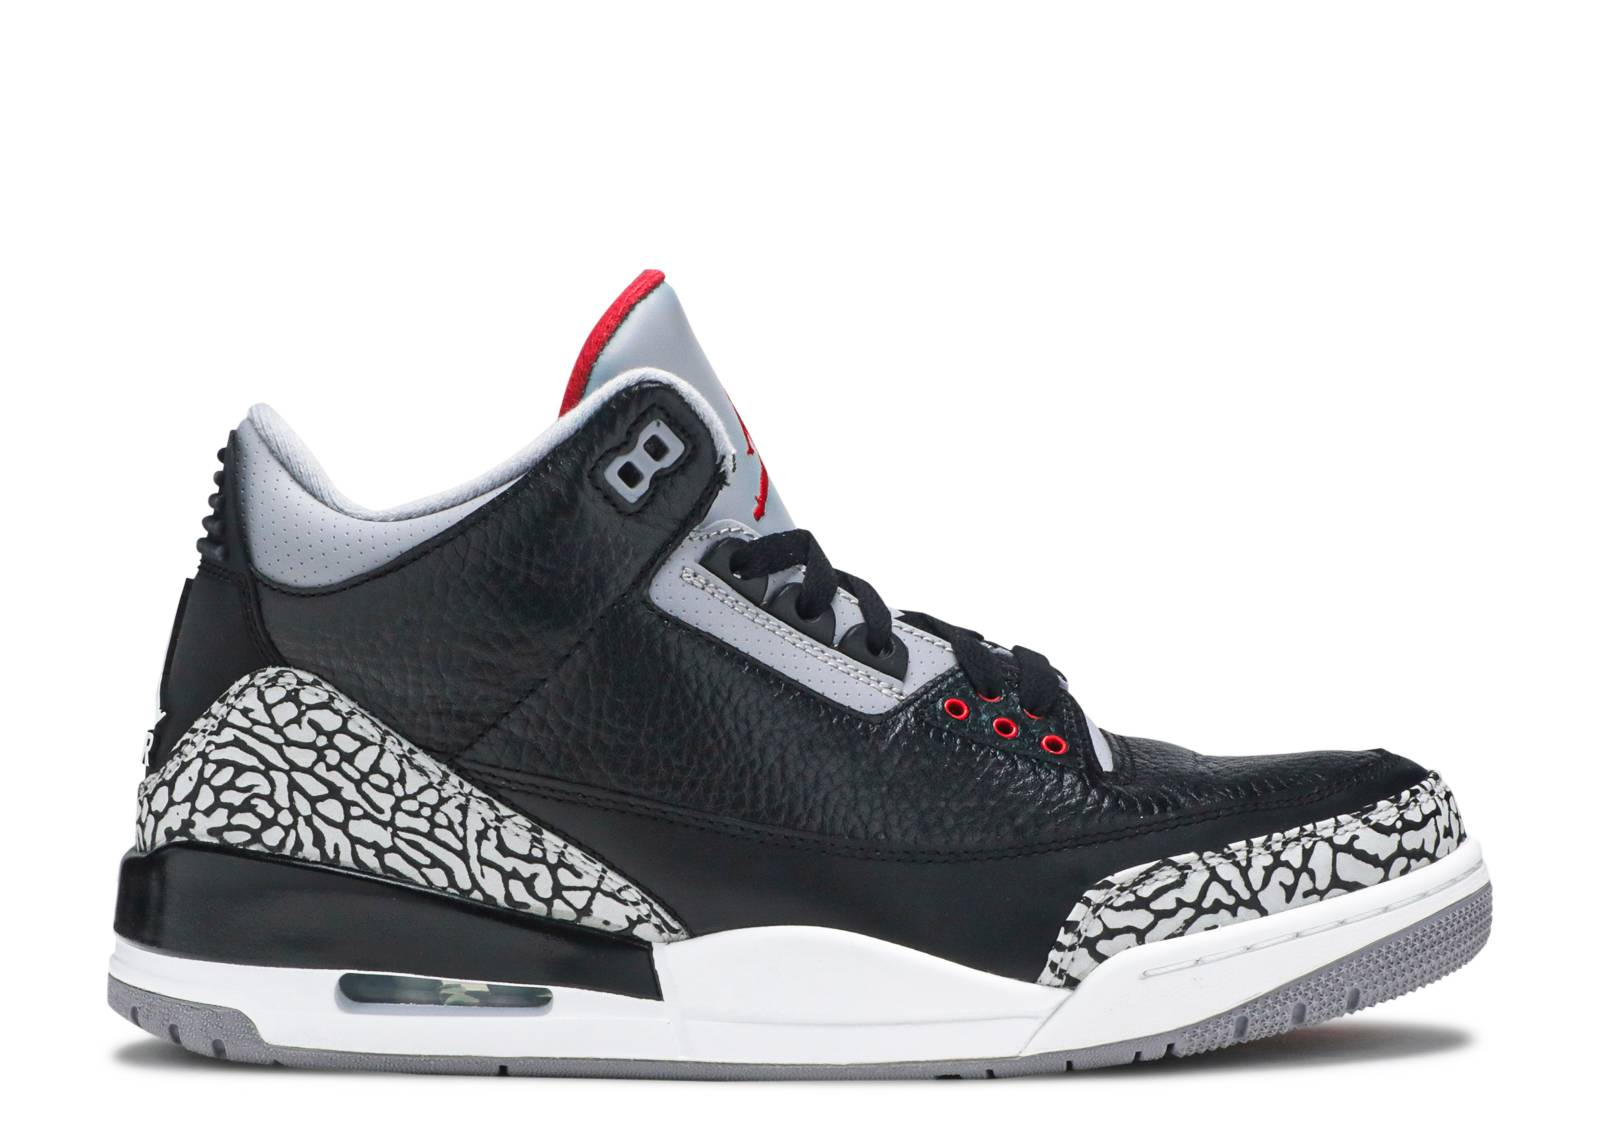 nike air jordan 3 iii retro black cement grey red